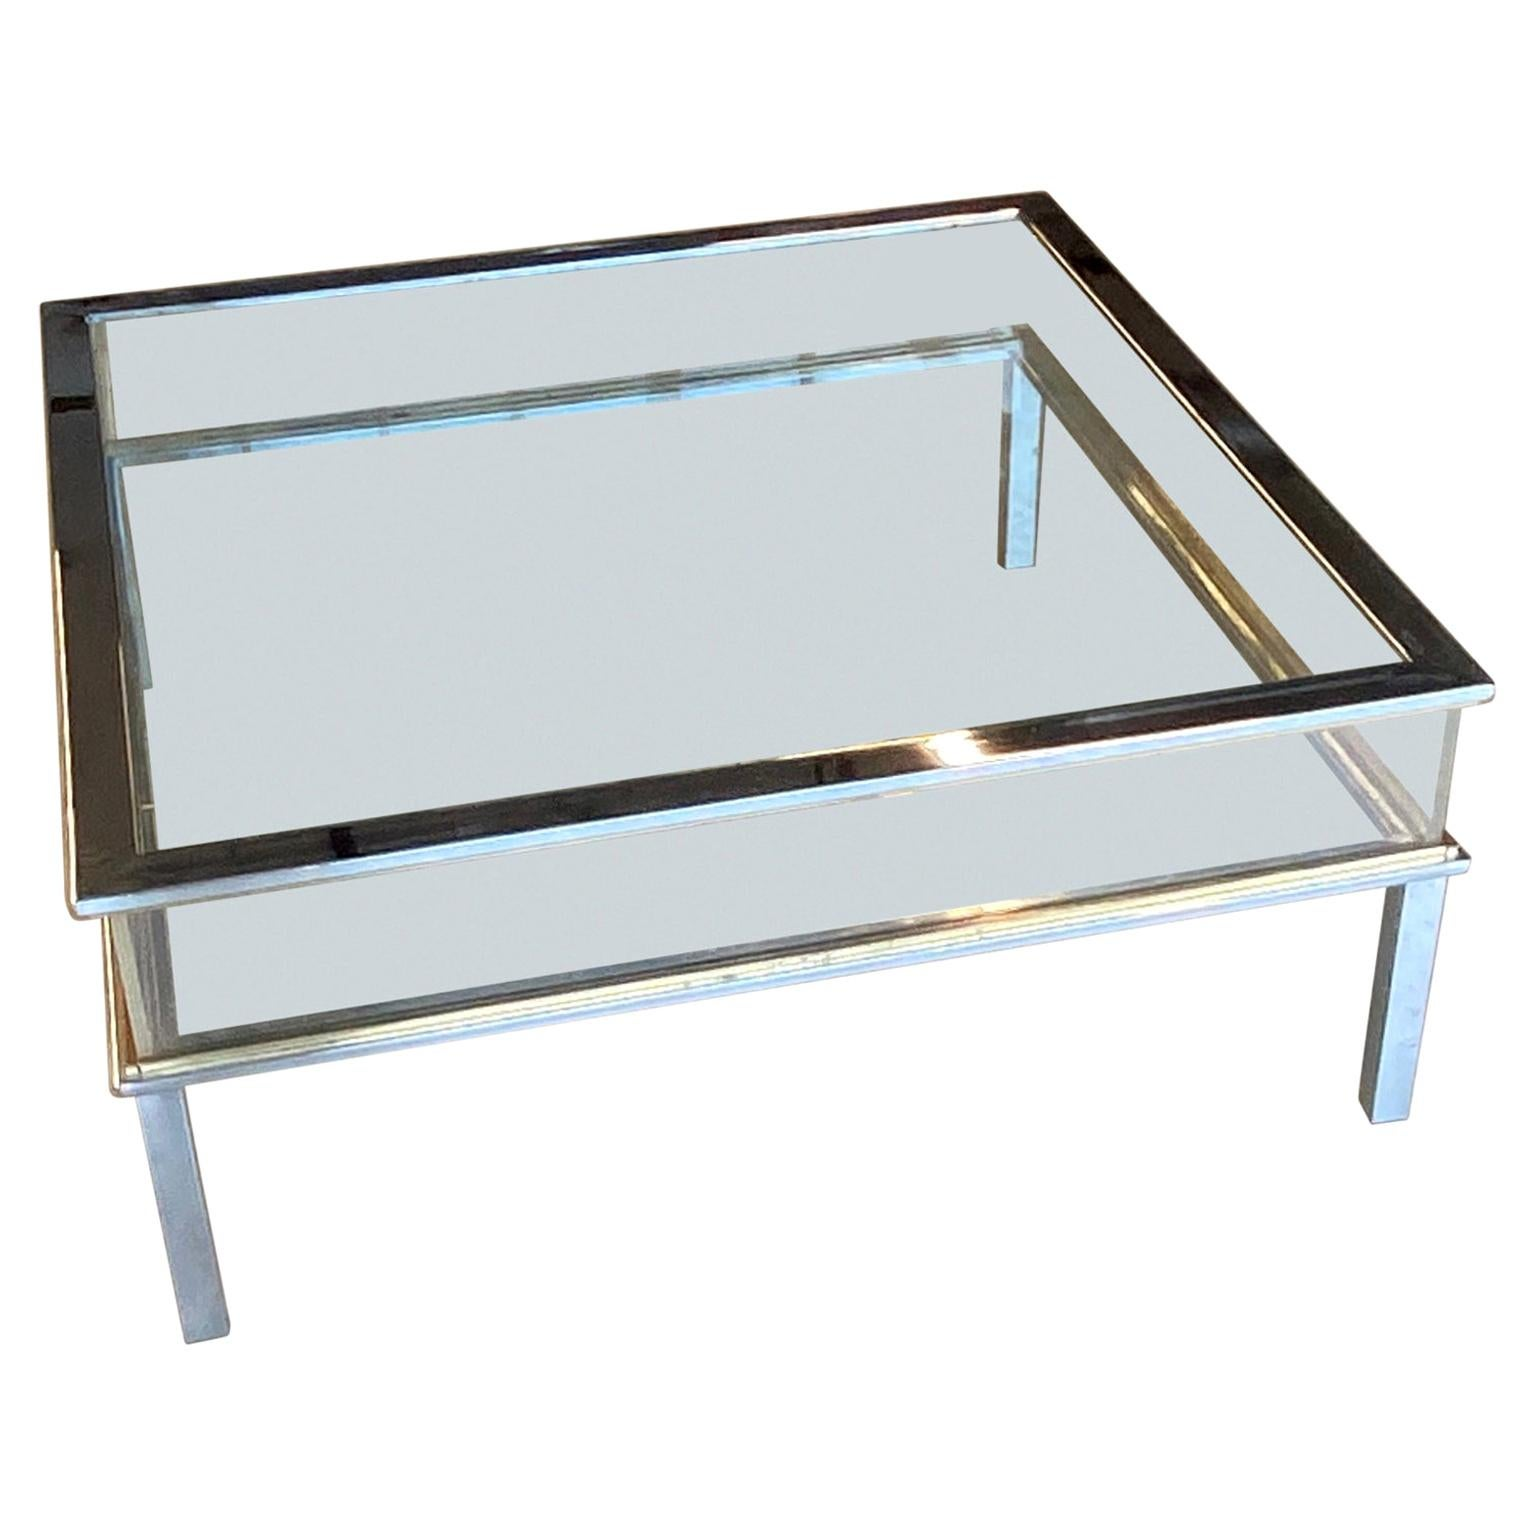 Brass and Chrome Sliding Top Coffee Table by Maison Jansen